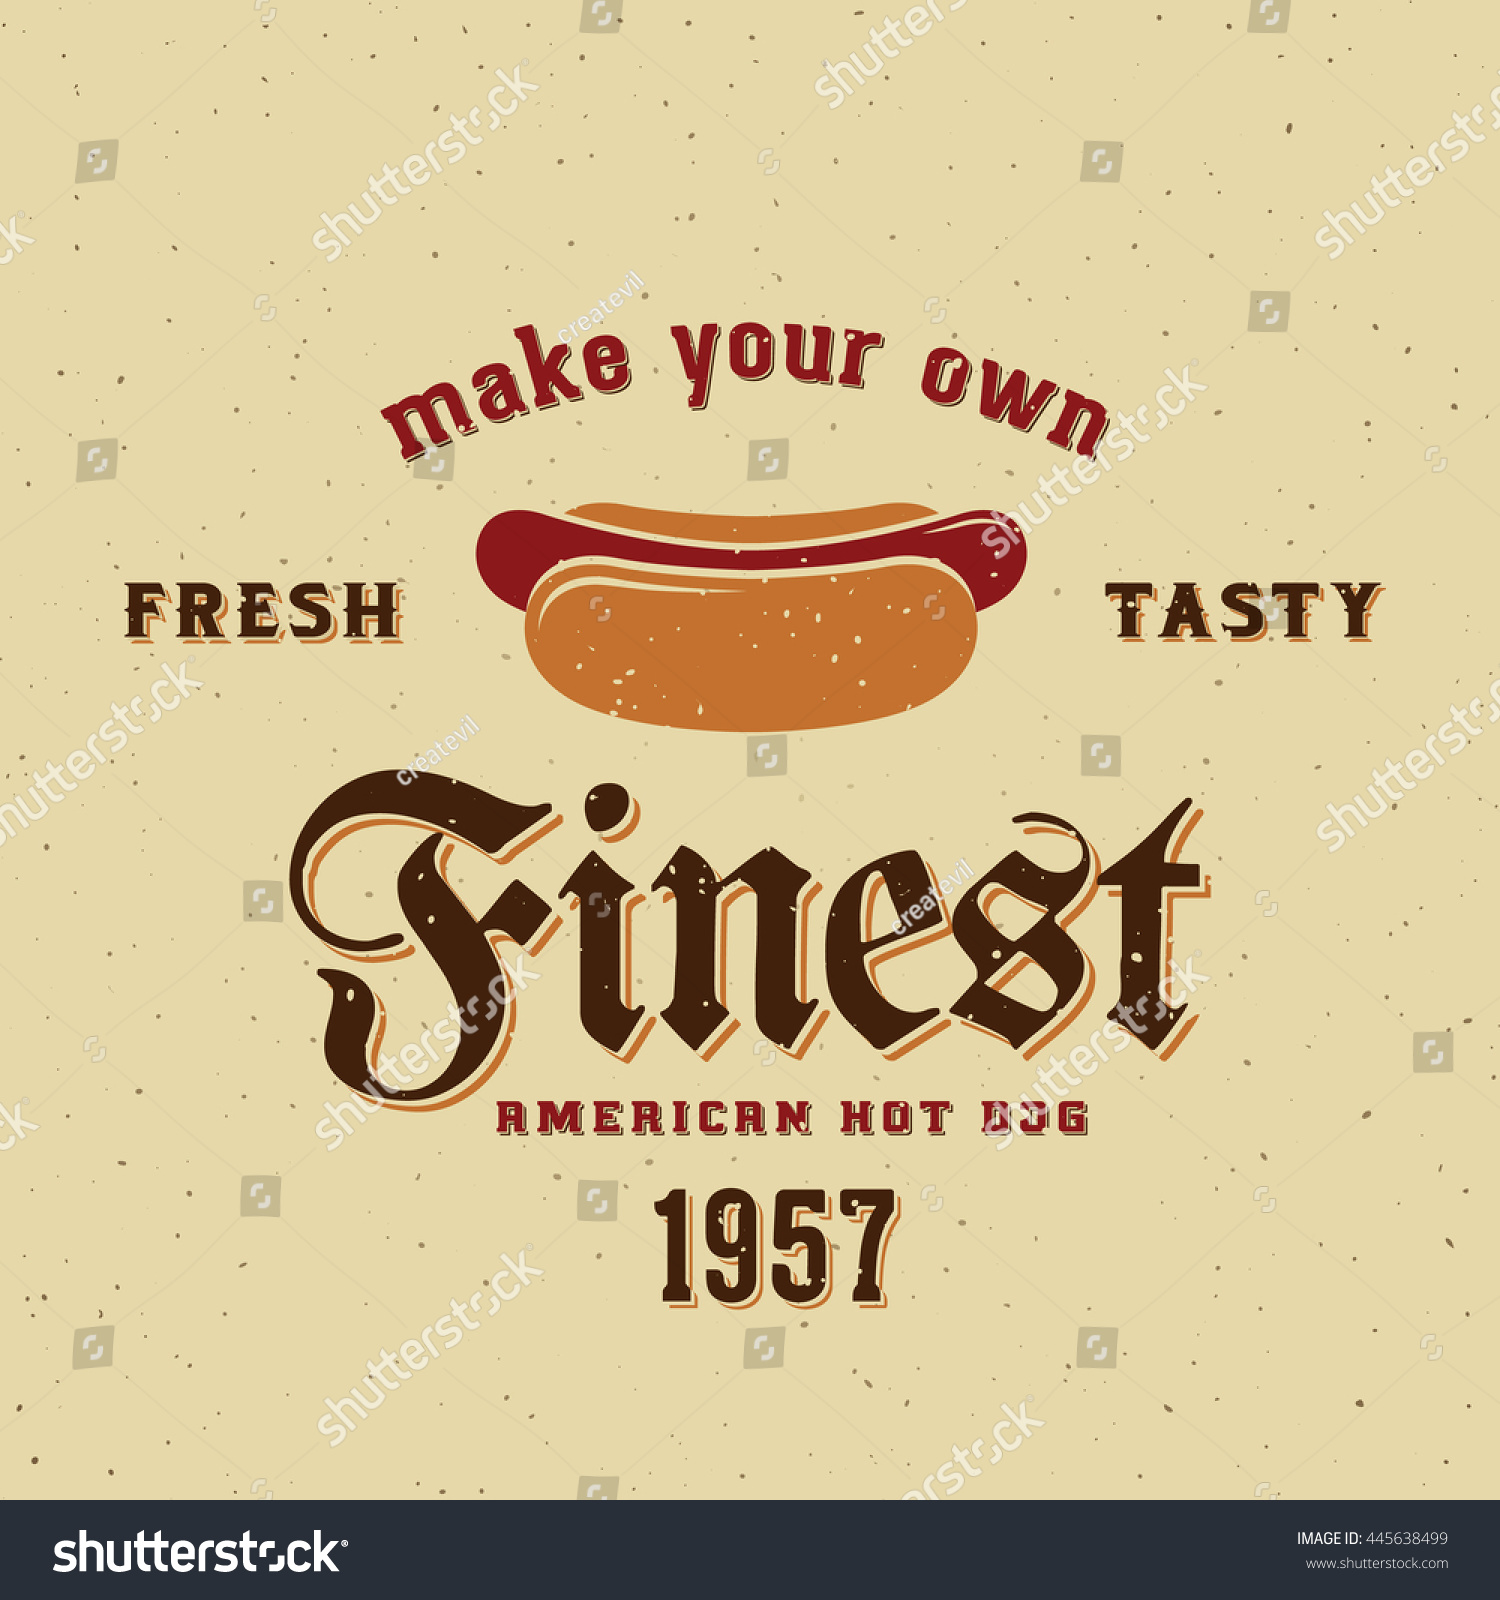 Finest American Hot Dog Vintage Vector Stock Vector Royalty Free